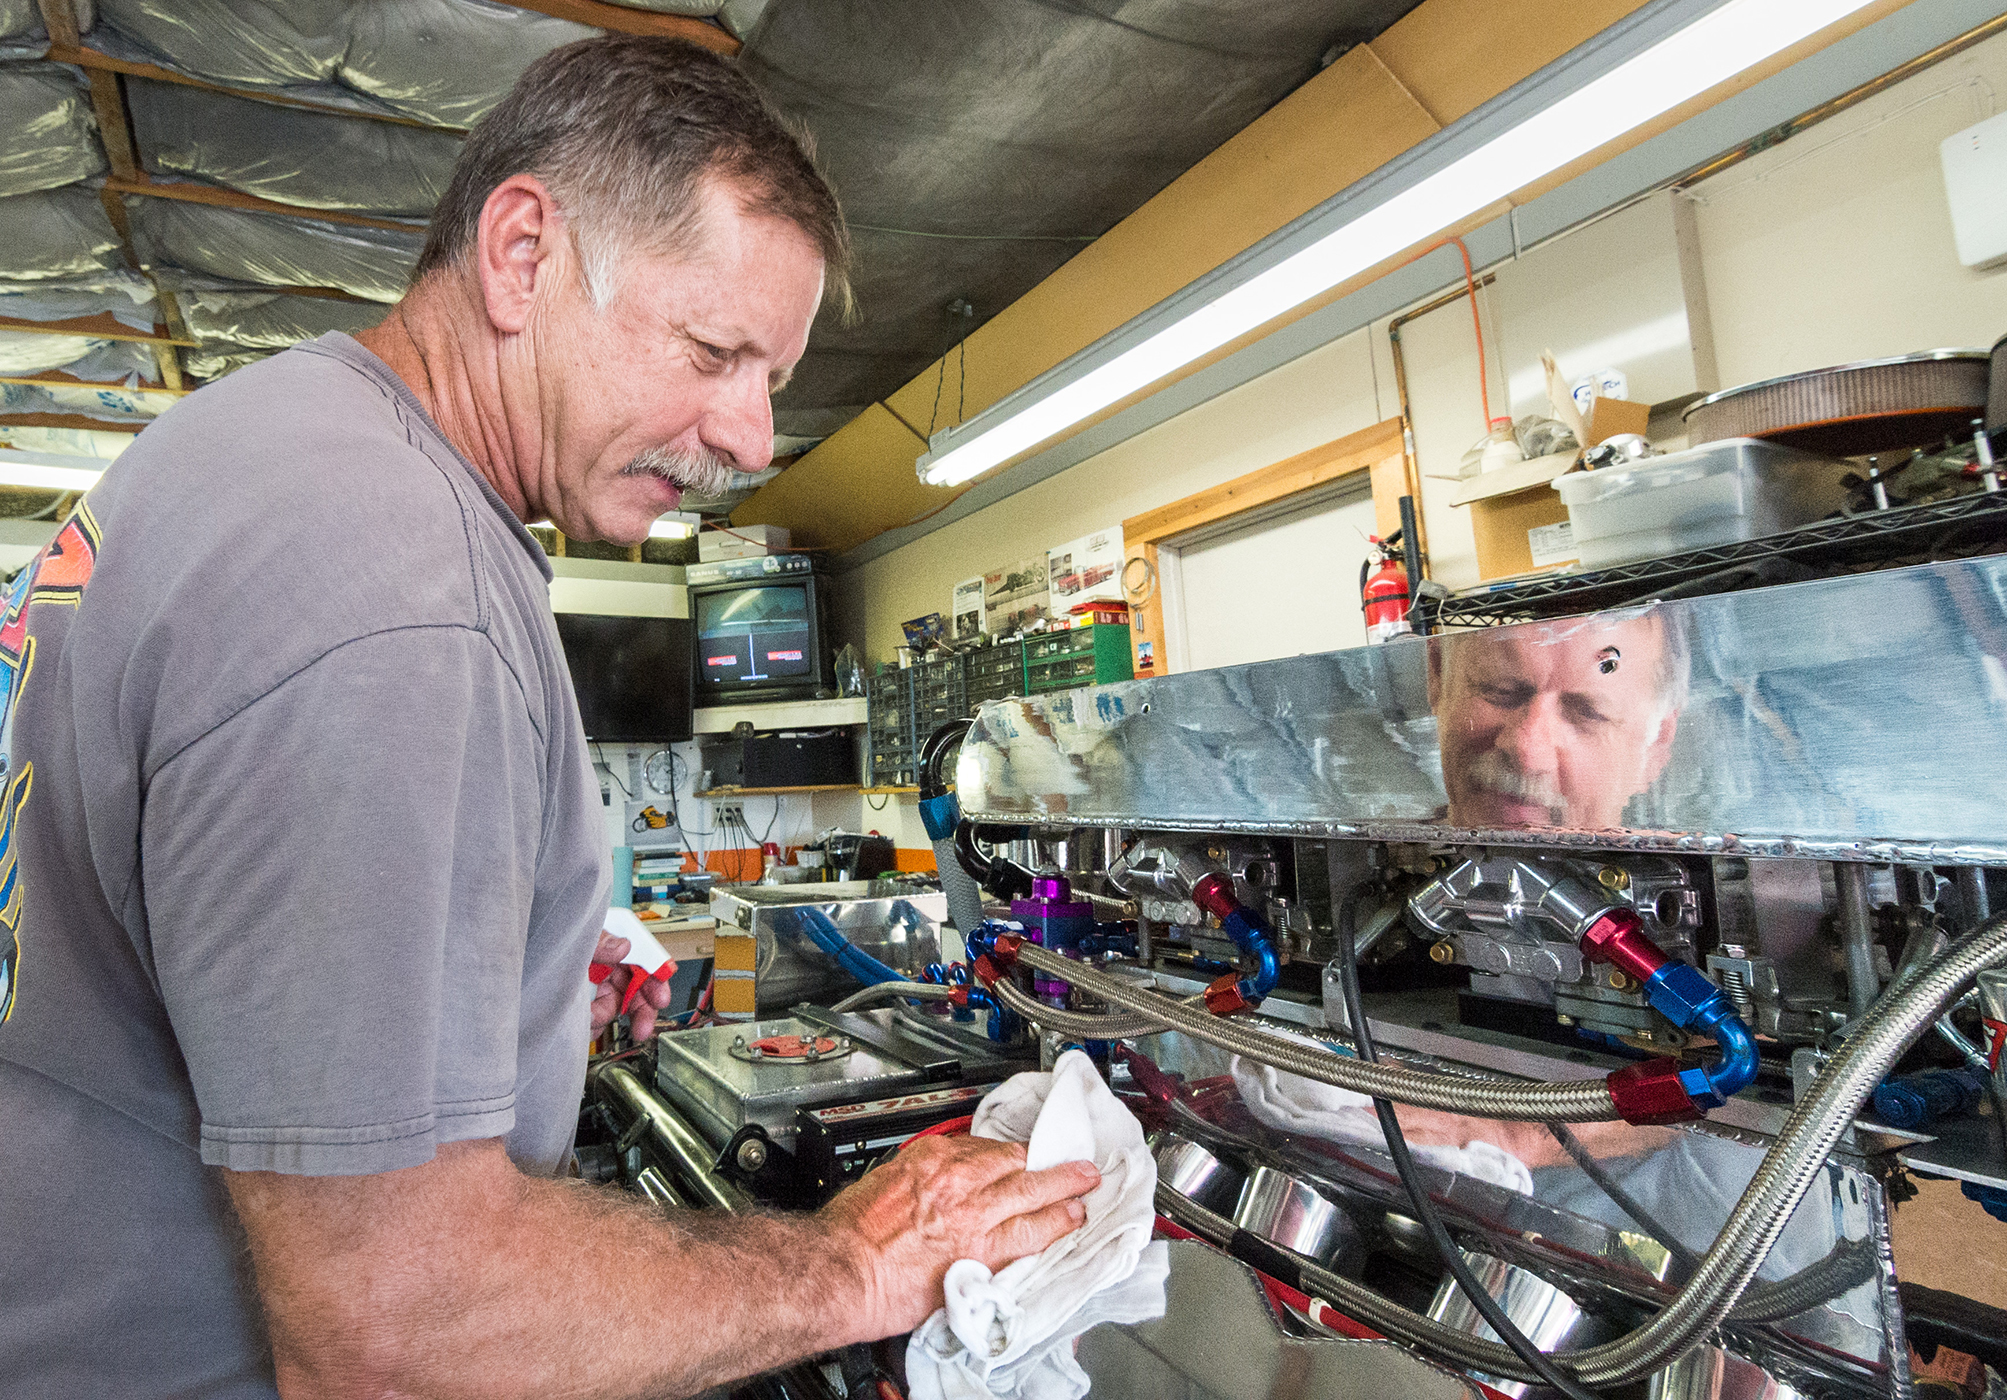 """""""One thing about this is you're always cleaning,"""" Dave Isley says while cleaning the engine bay. He jokes that it is a good thing he does not mind because half of racing is cleaning the car."""